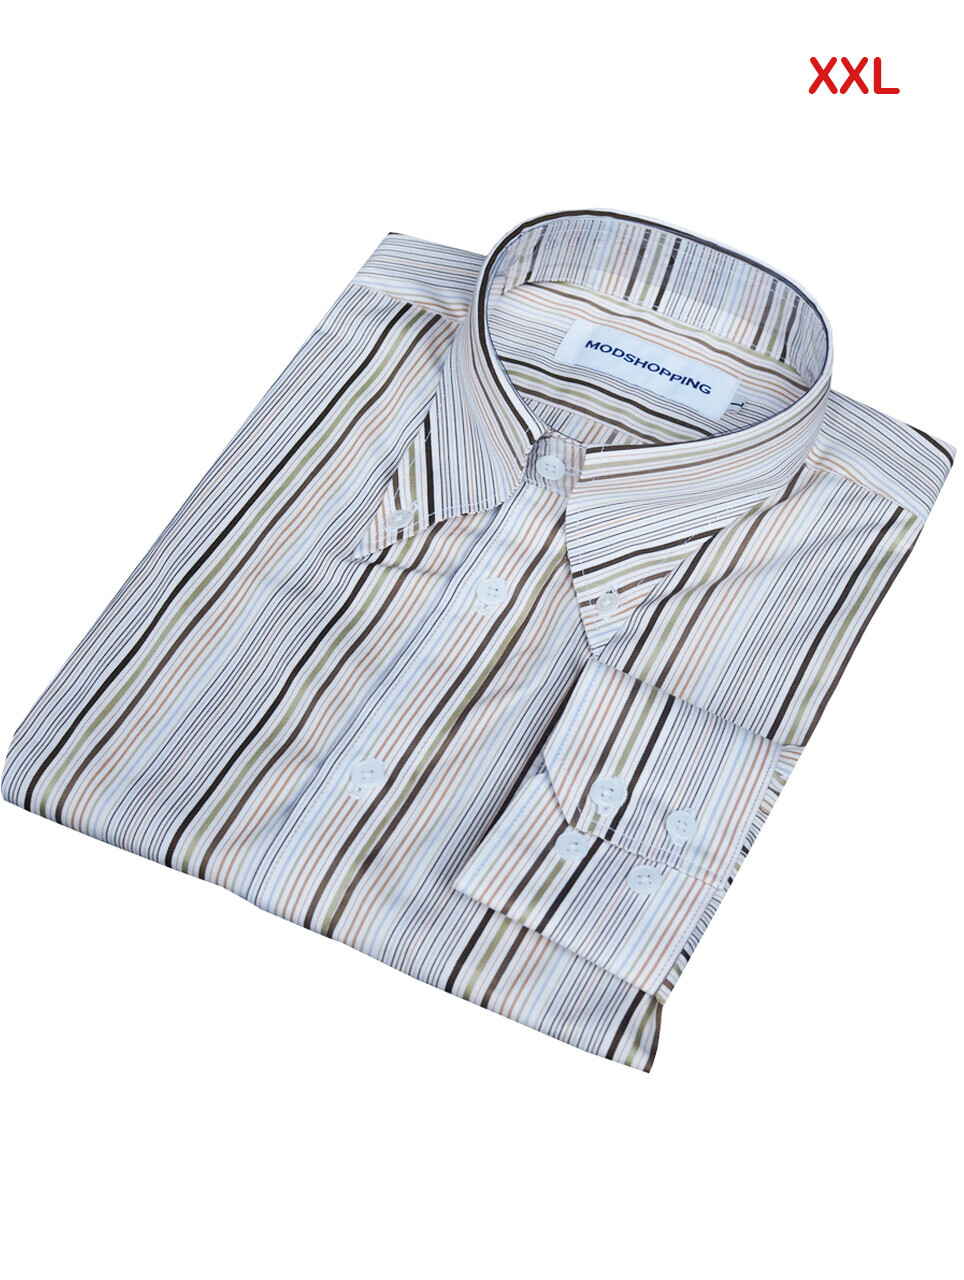 This Shirt Only. Multi-Color Stripe Button-Down Collar